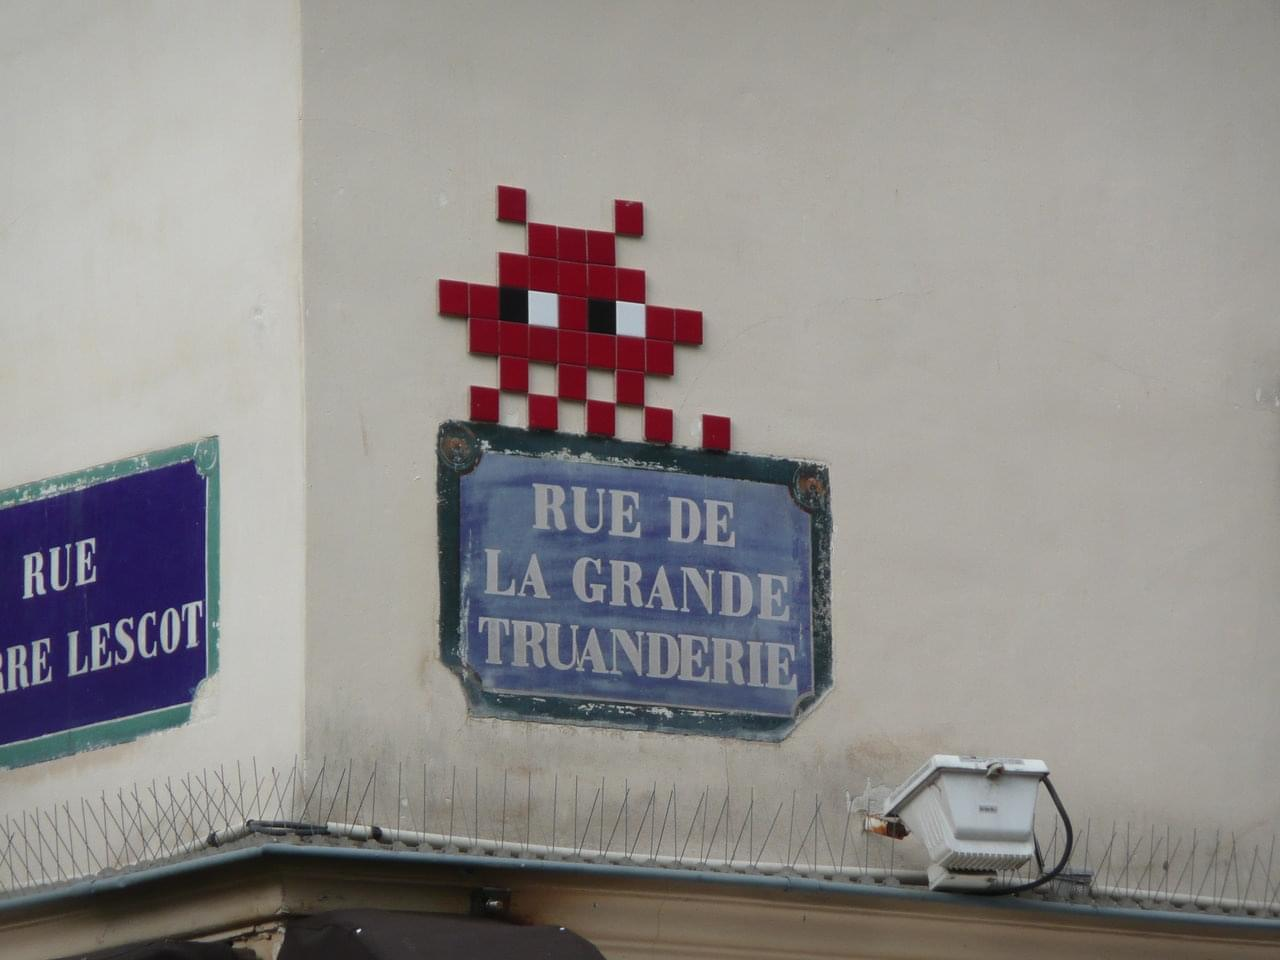 Photo Top 10 des pires noms de rues à Paris